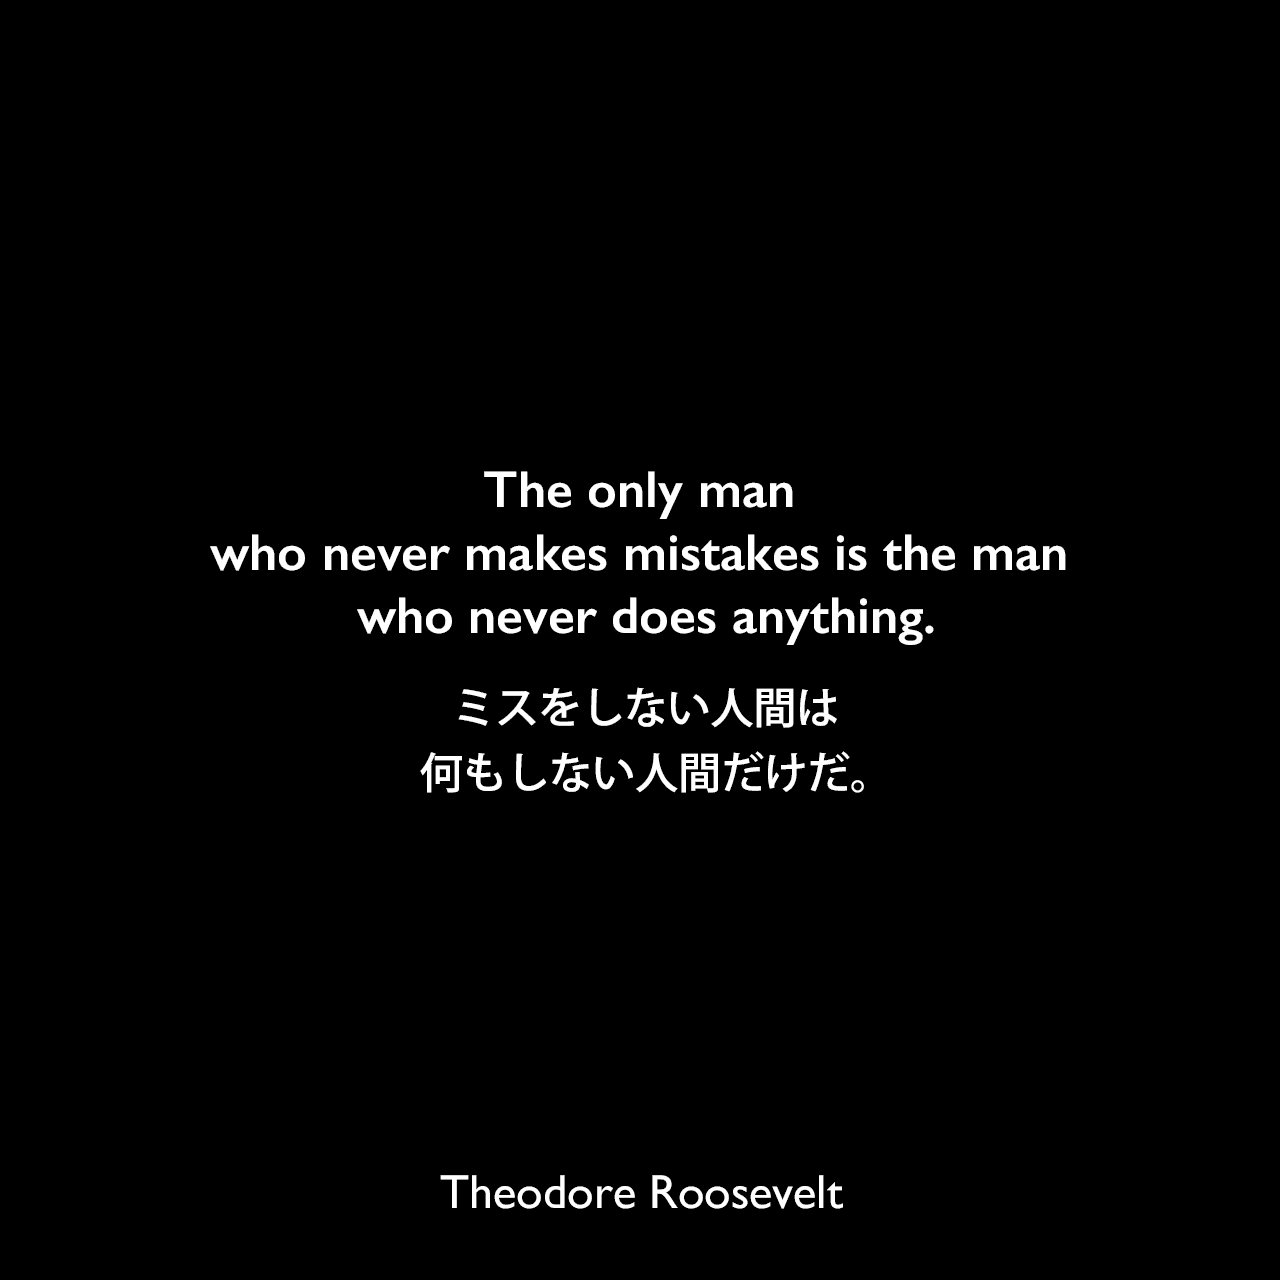 The only man who never makes mistakes is the man who never does anything.ミスをしない人間は、何もしない人間だけだ。- ジェイコブ・リースによる本「Theodore Roosevelt, the Citizen」よりTheodore Roosevelt